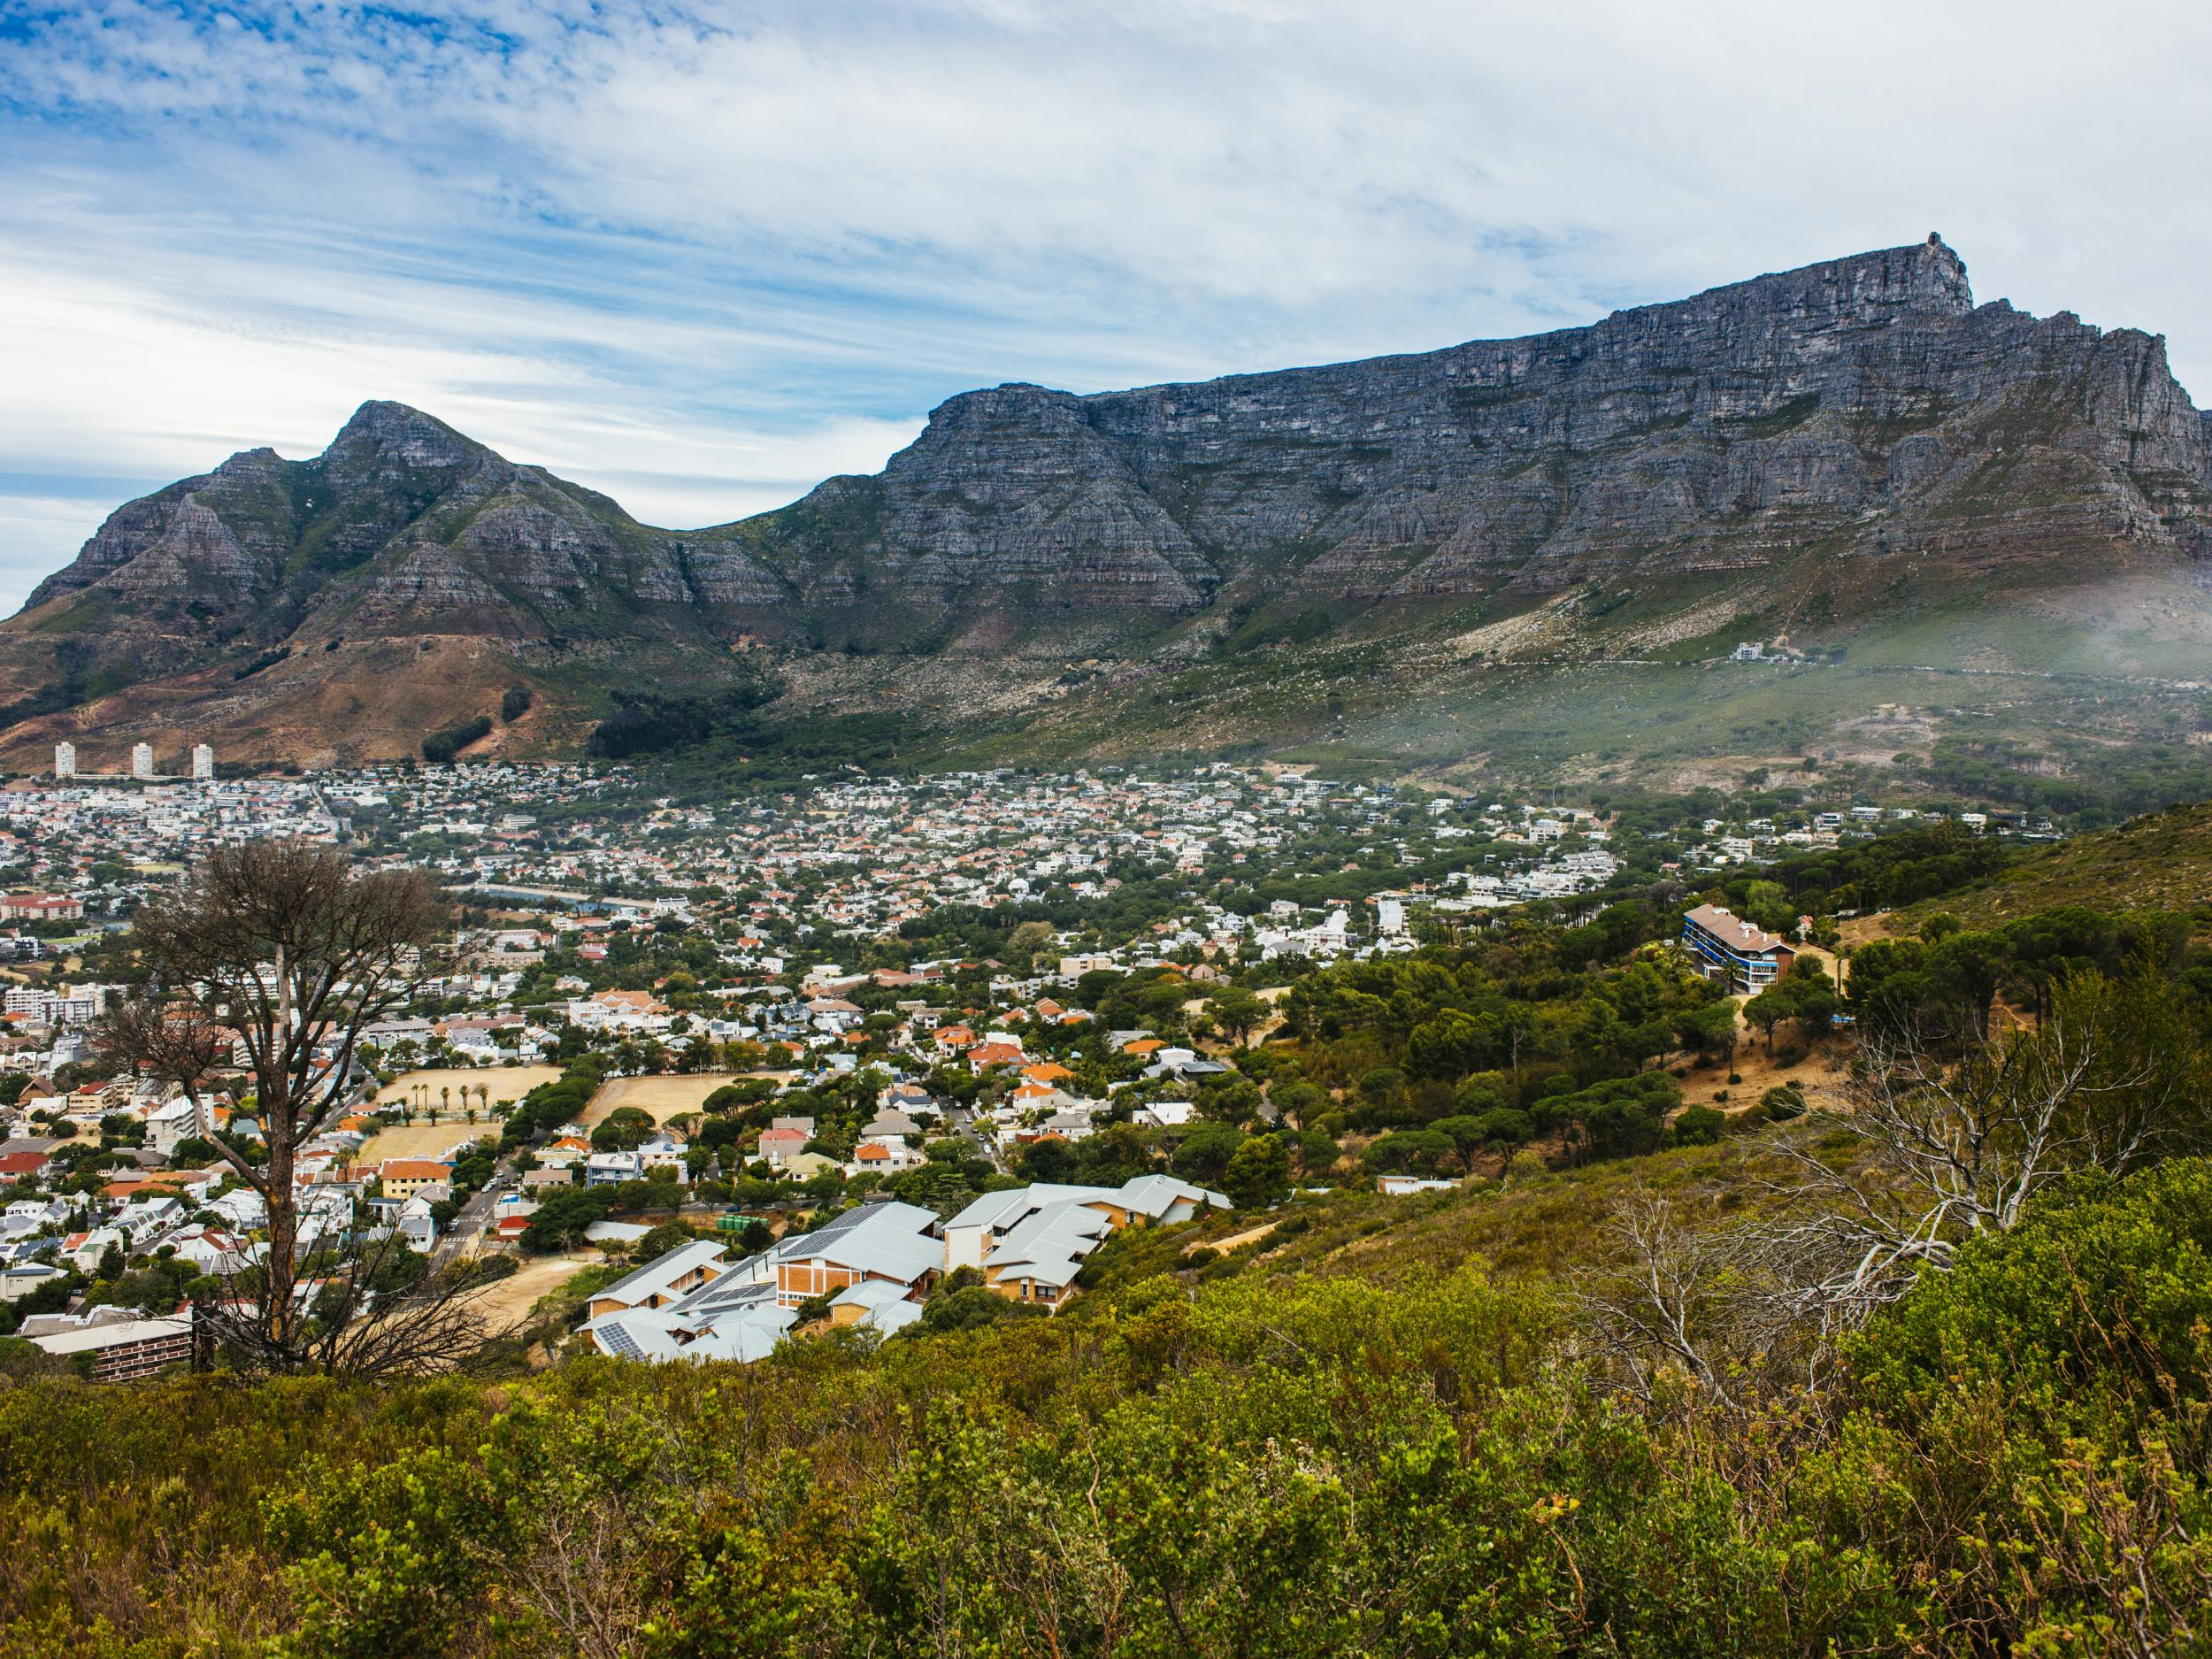 Cape Town - latest news, breaking stories and comment - The